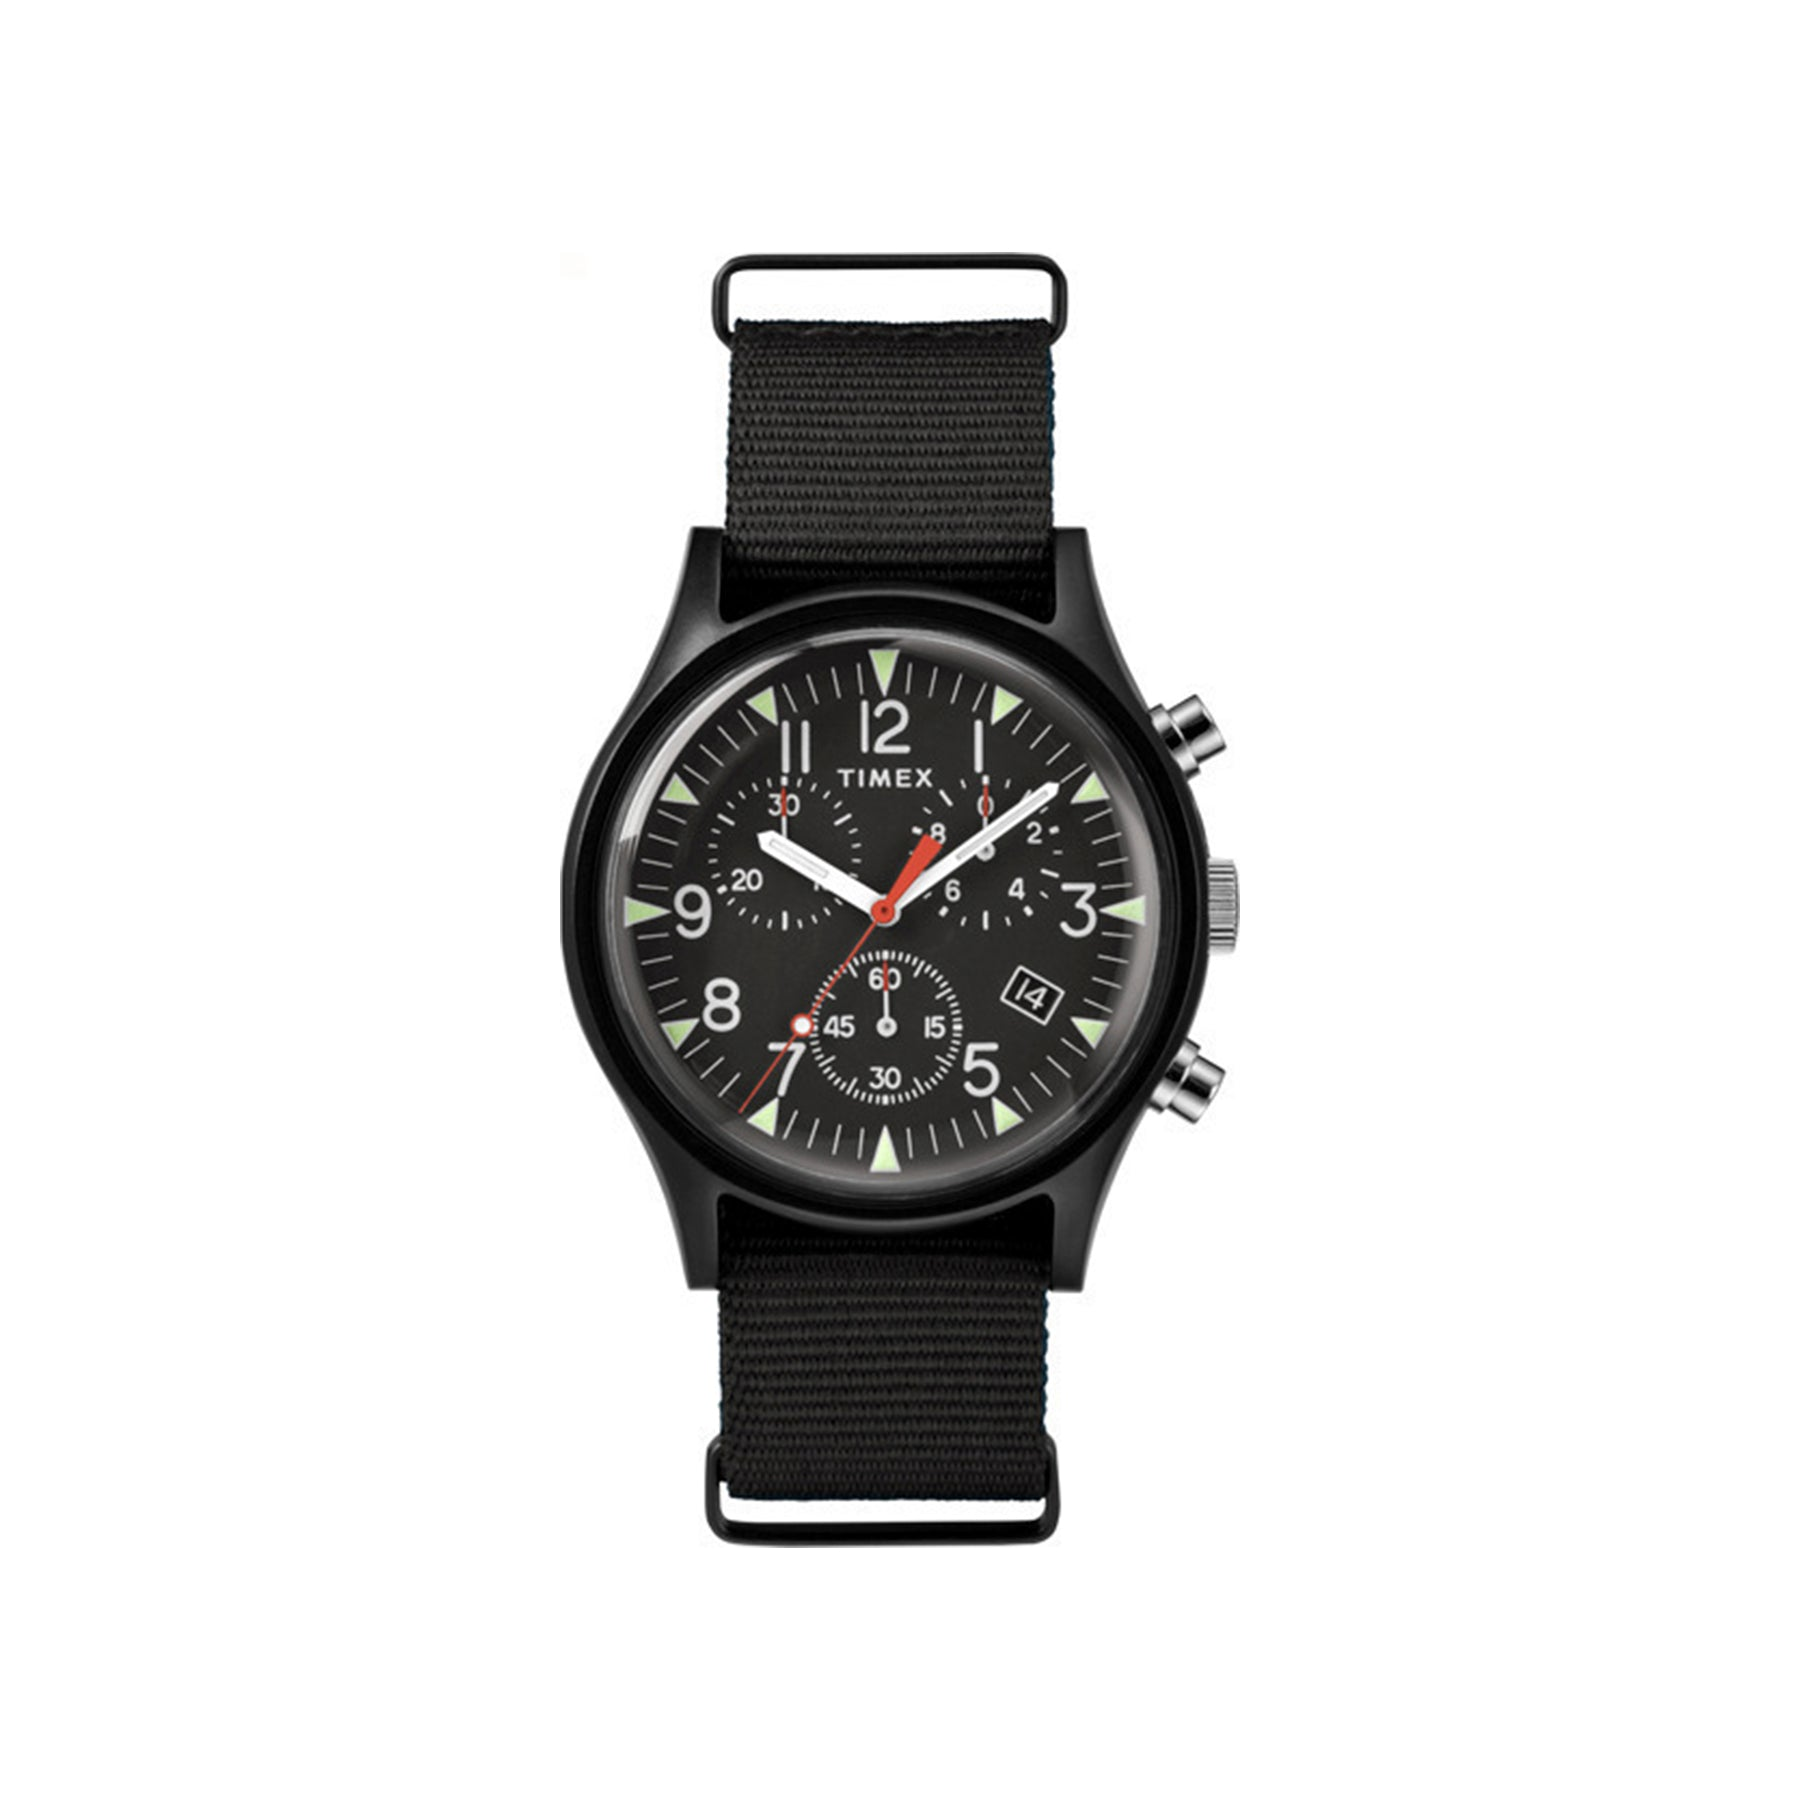 MK1 Chronograph 40mm Timex Watch - Black Nylon Strap